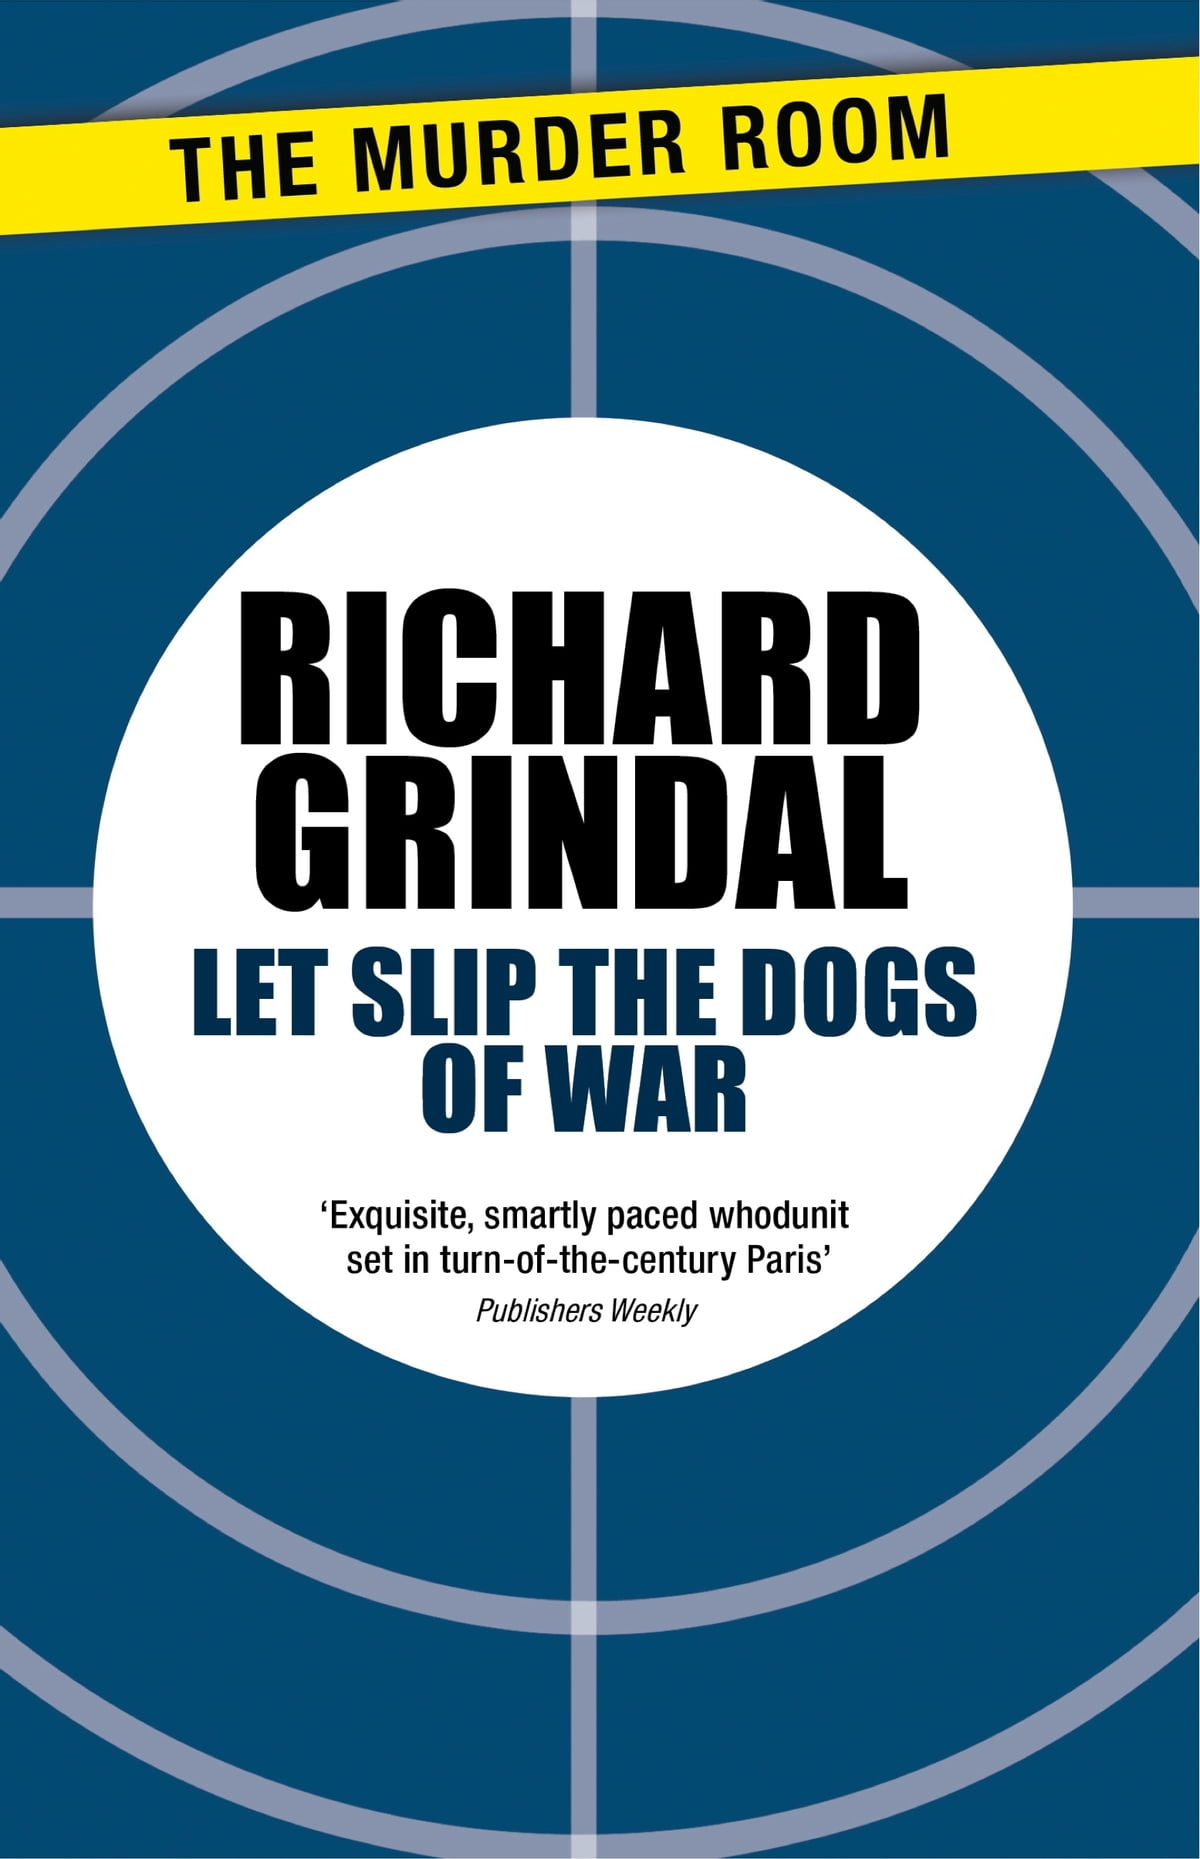 And Let Slip The Dogs Of War let slip the dogs of war ebookrichard grindal - rakuten kobo